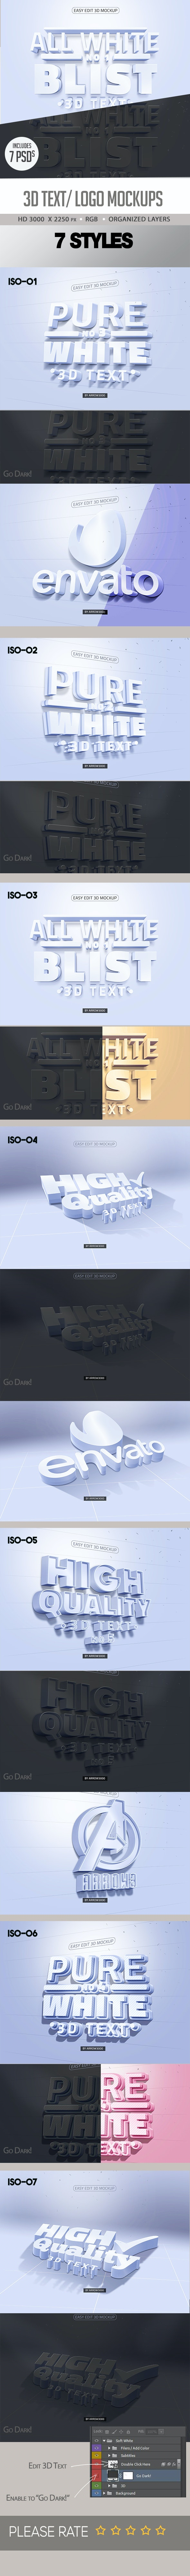 Pure White 3D Text/ Logo Mock up - Text Effects Actions